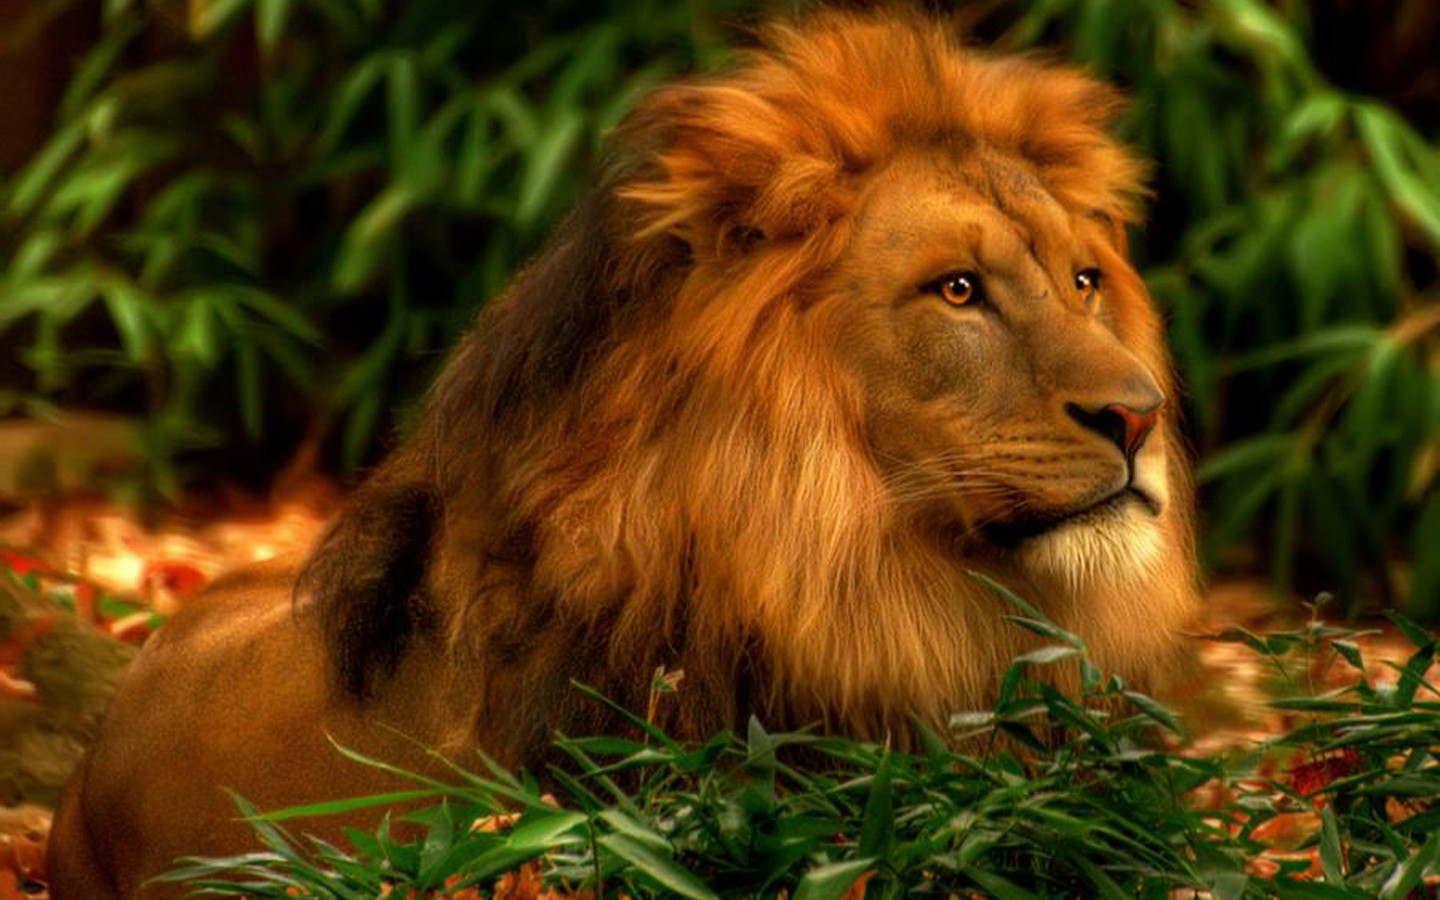 Best 55 Lion Hd Wallpapers Pictures Stock Photos Download